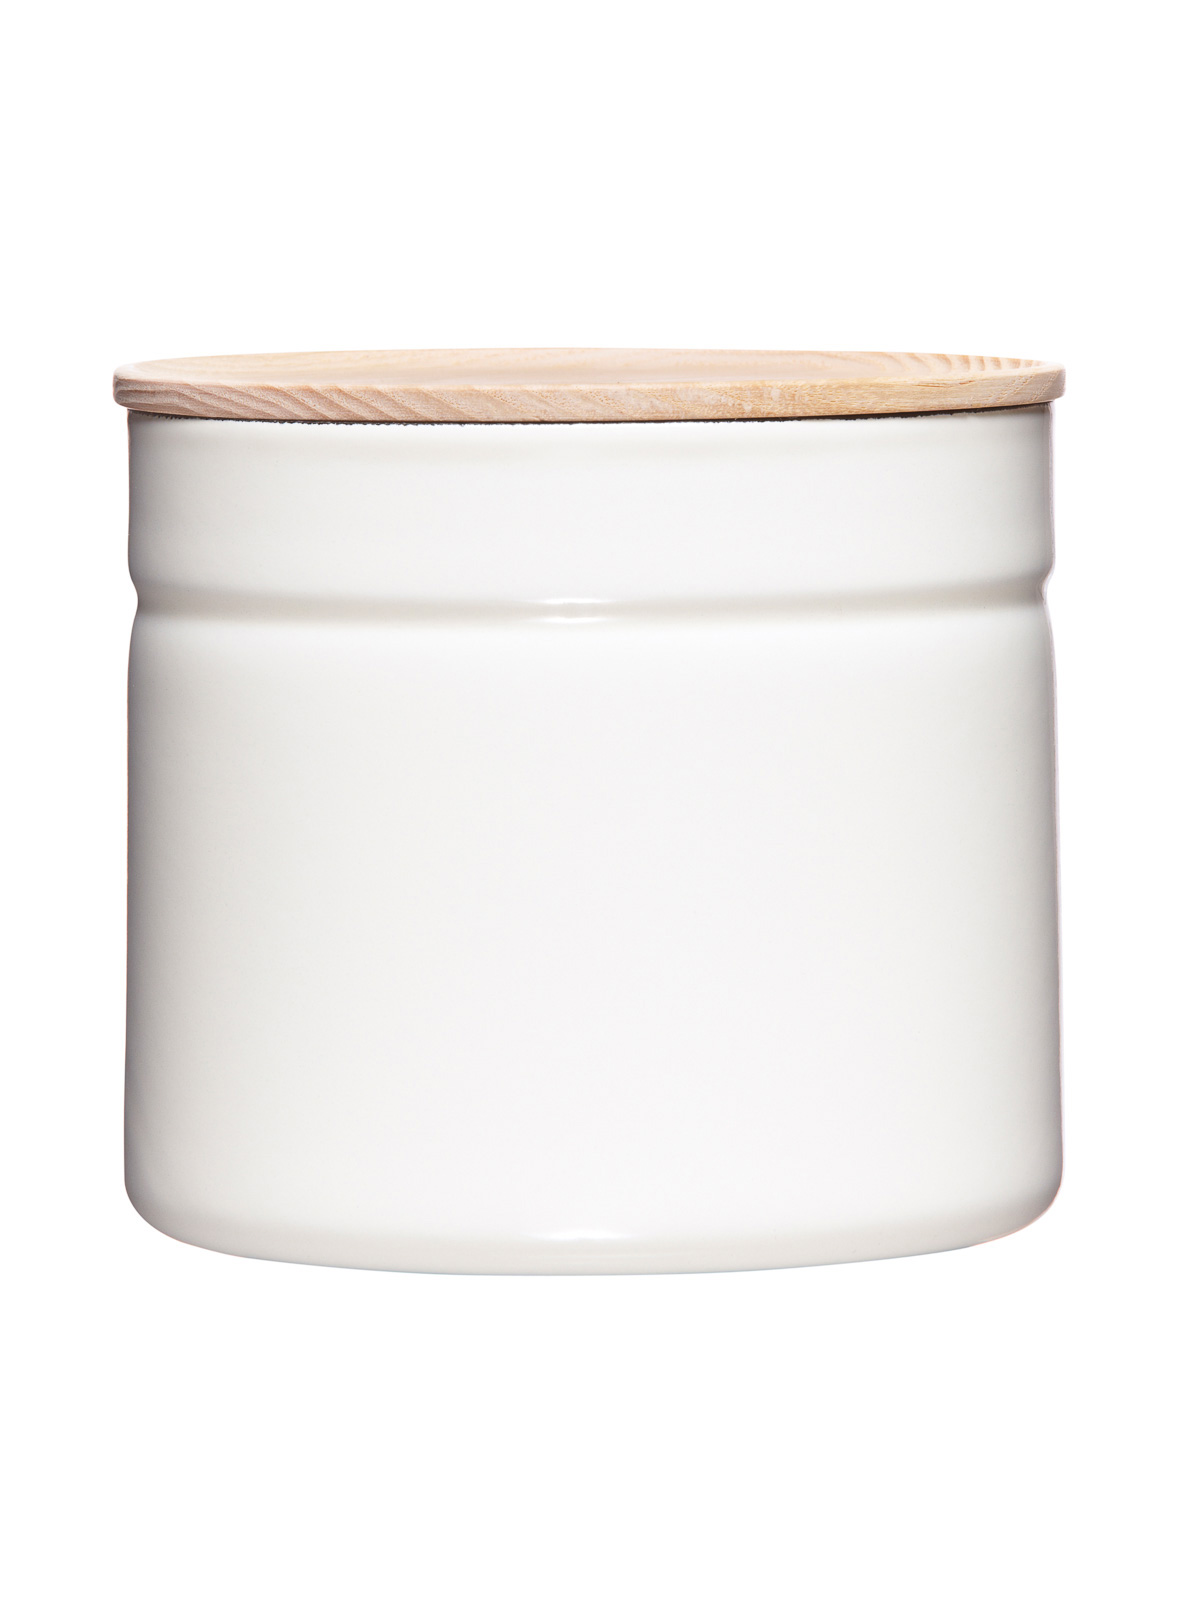 storage container pure white 1390 ml (2174-212)